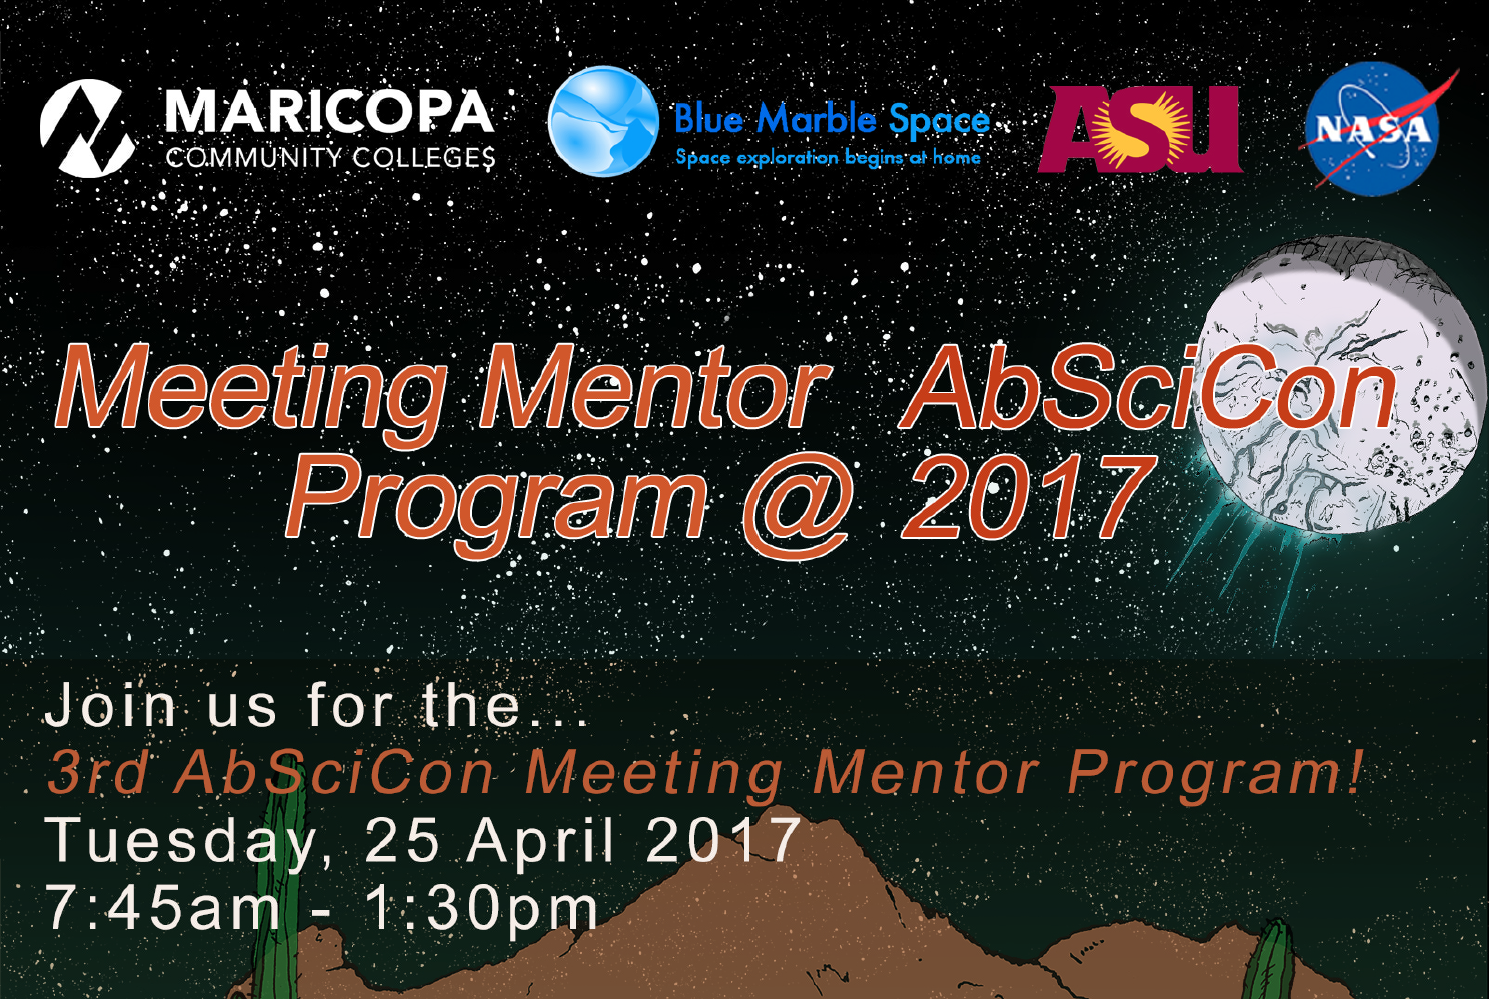 The 3rd AbSciCon Meeting Mentor Program takes place Tuesday, April 25, 2017, 7:45AM-1:30PM. Image credit: None